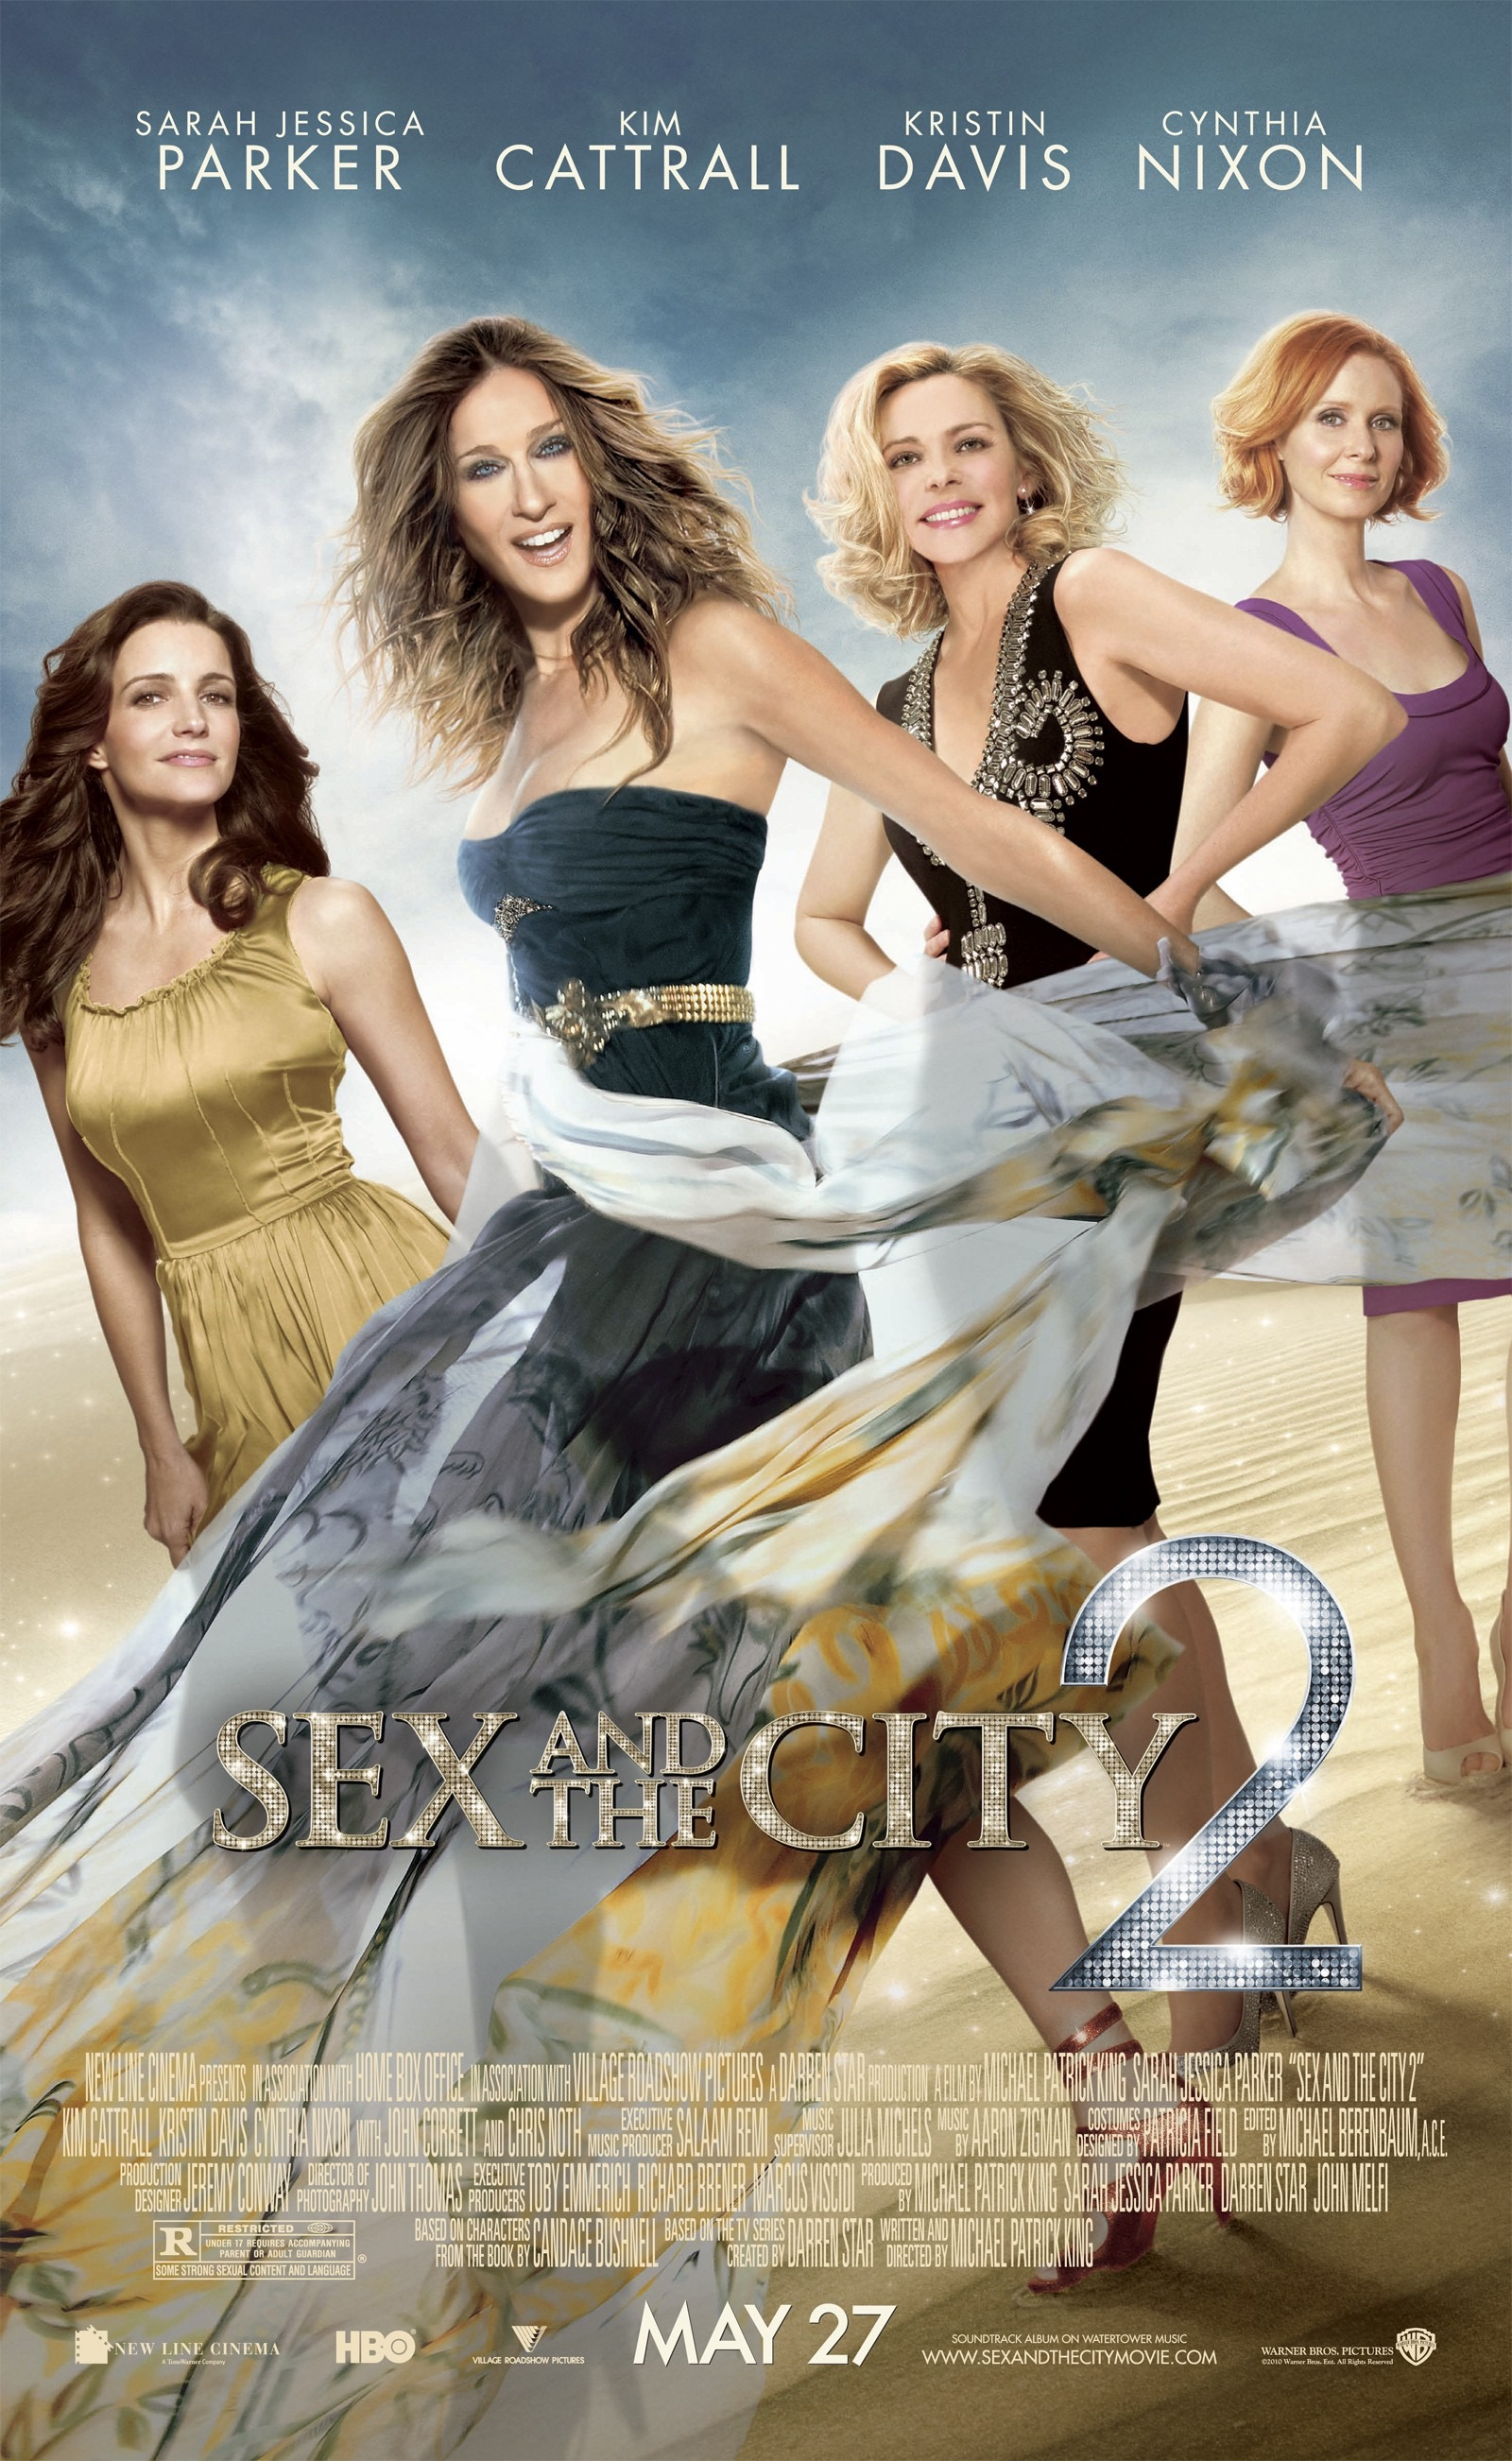 sex-and-the-city-2-movie-poster-sarah-jessica-parker-kim-cattrall-kristin-davis-and-cynthia-nixon.jpg